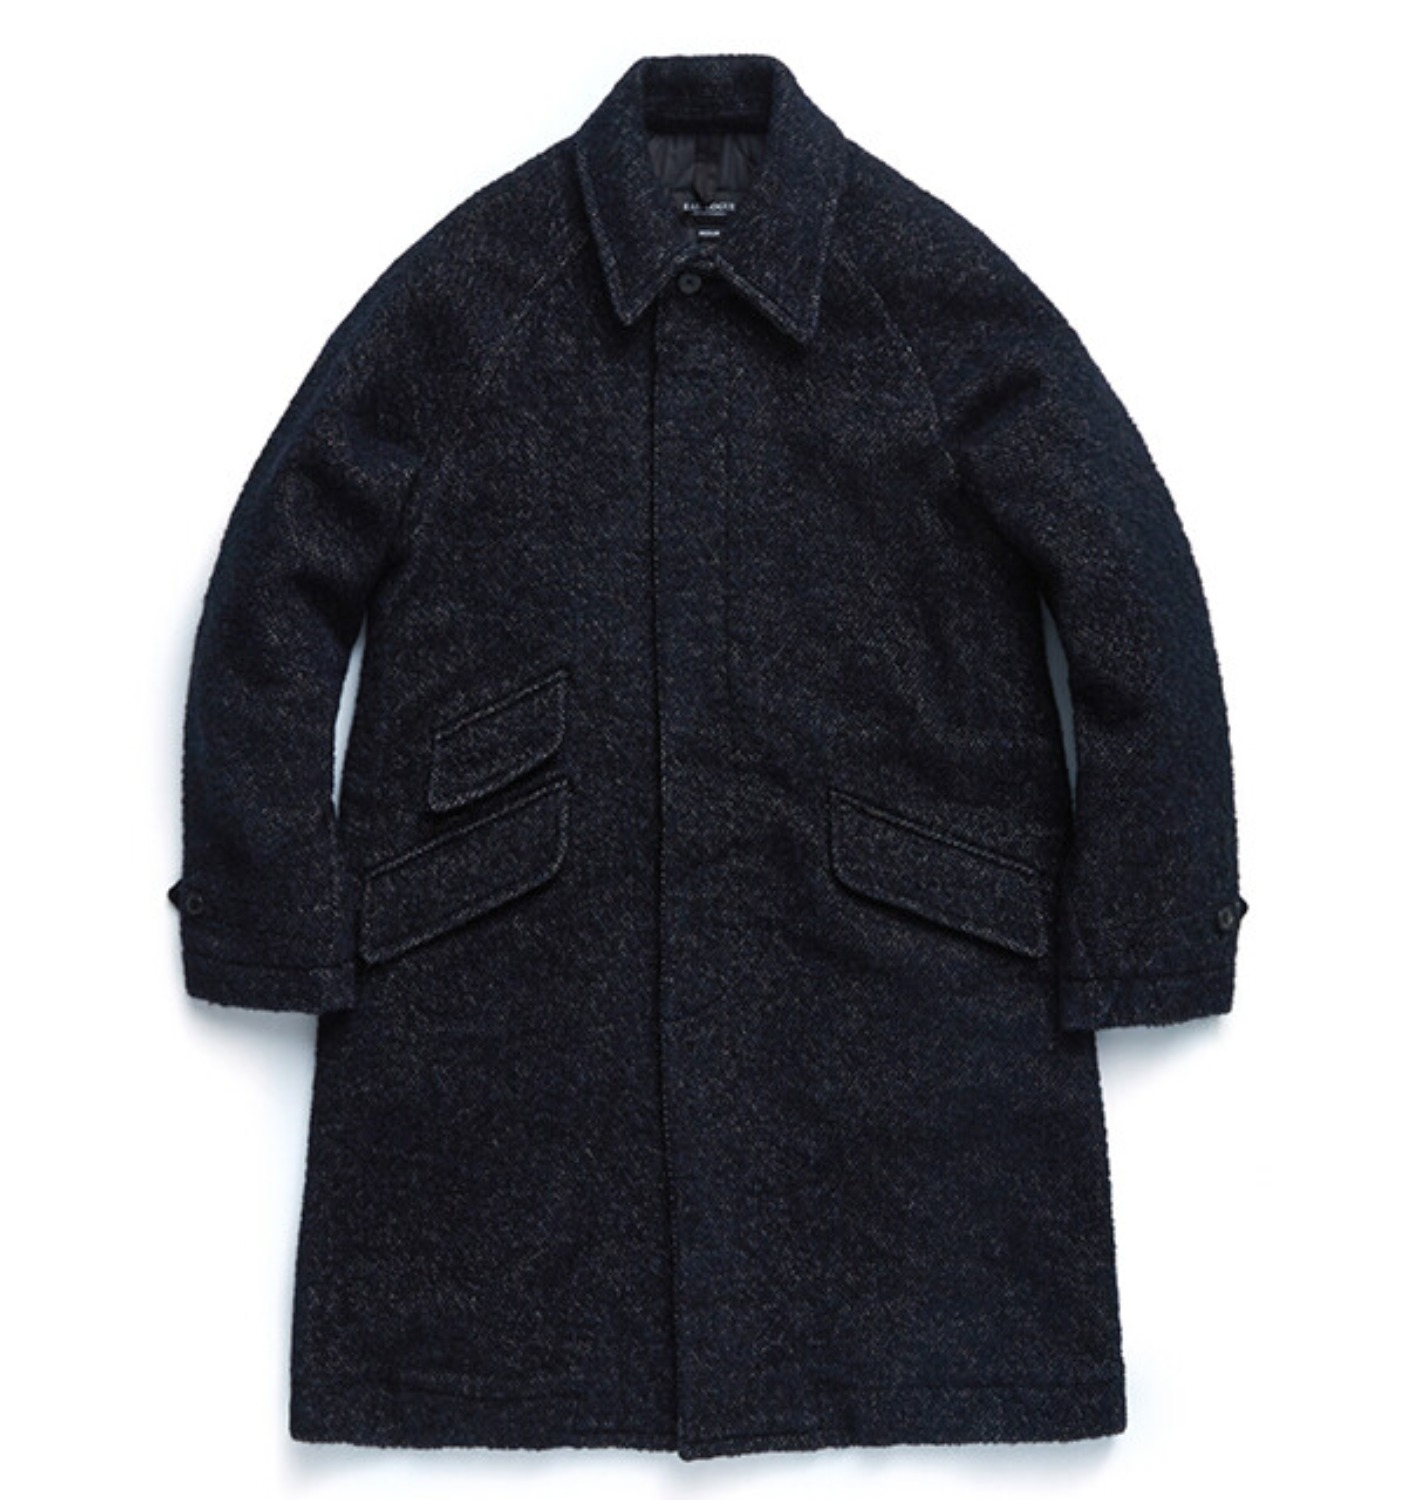 BALMACAAN COAT NAVY TOWEL